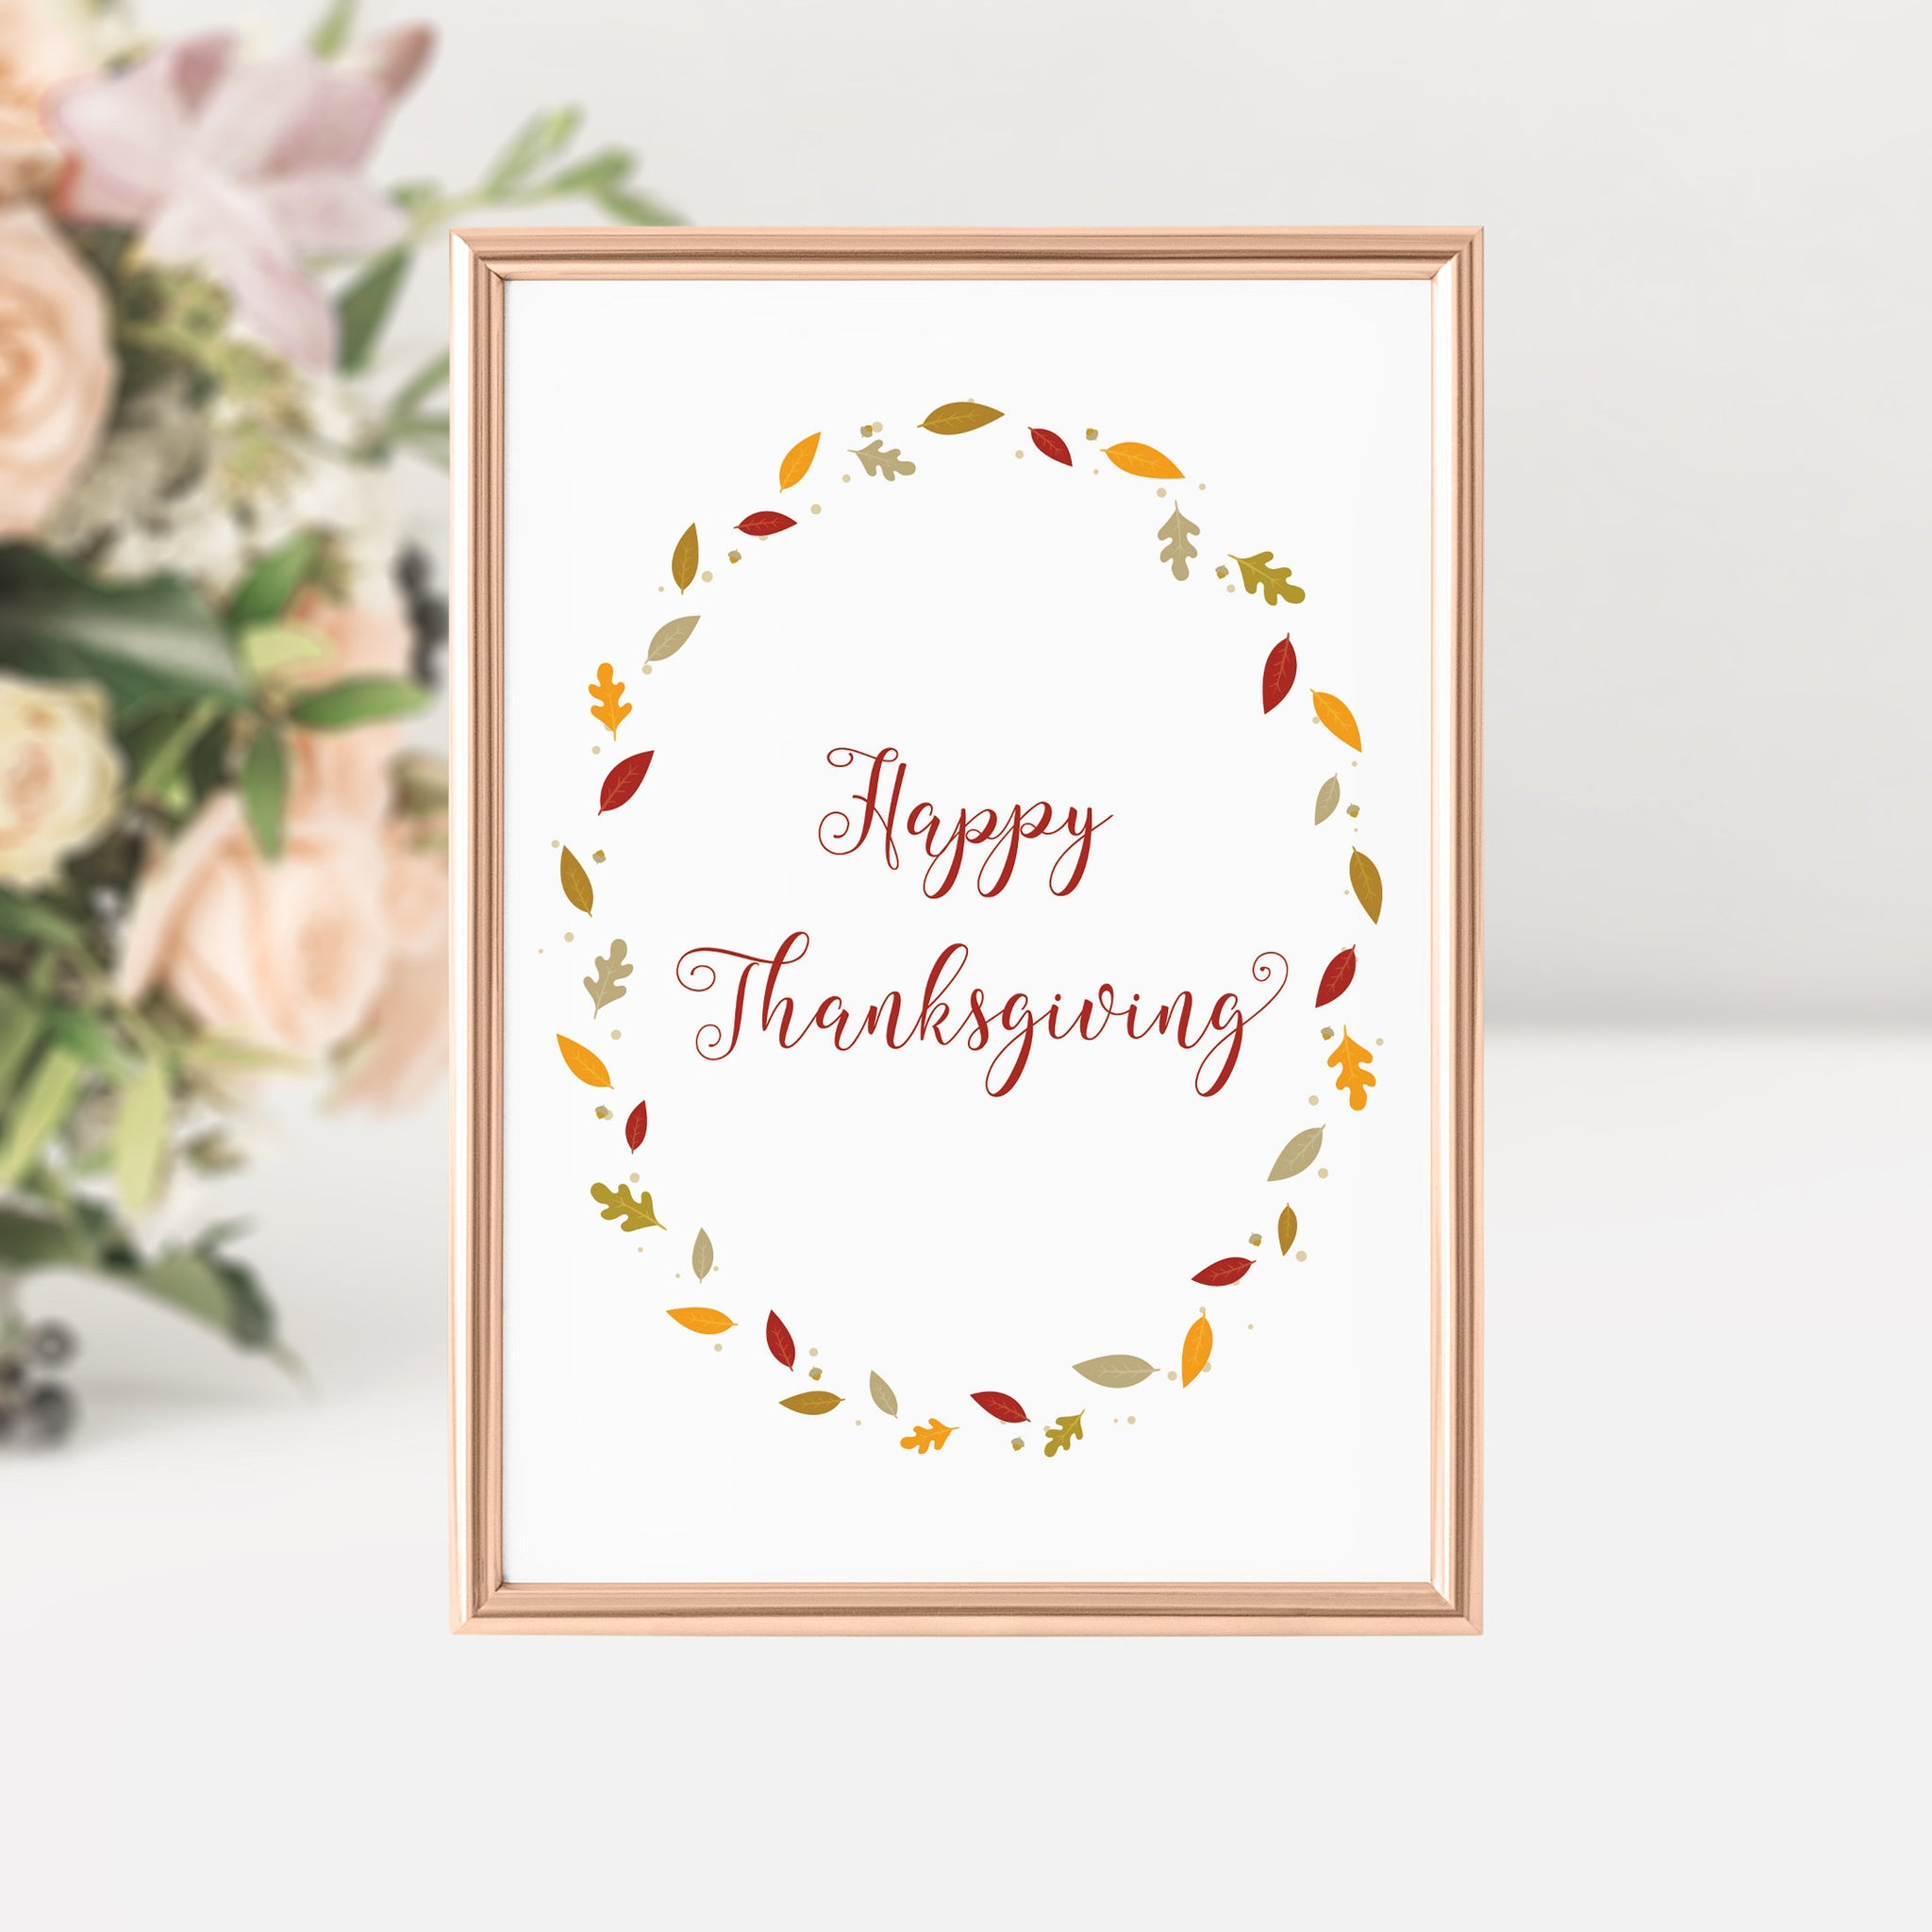 Happy Thanksgiving Sign, Thanksgiving Home Decor, Thanksgiving Signs Printable, Front Entrance Decor, INSTANT DOWNLOAD - FL100